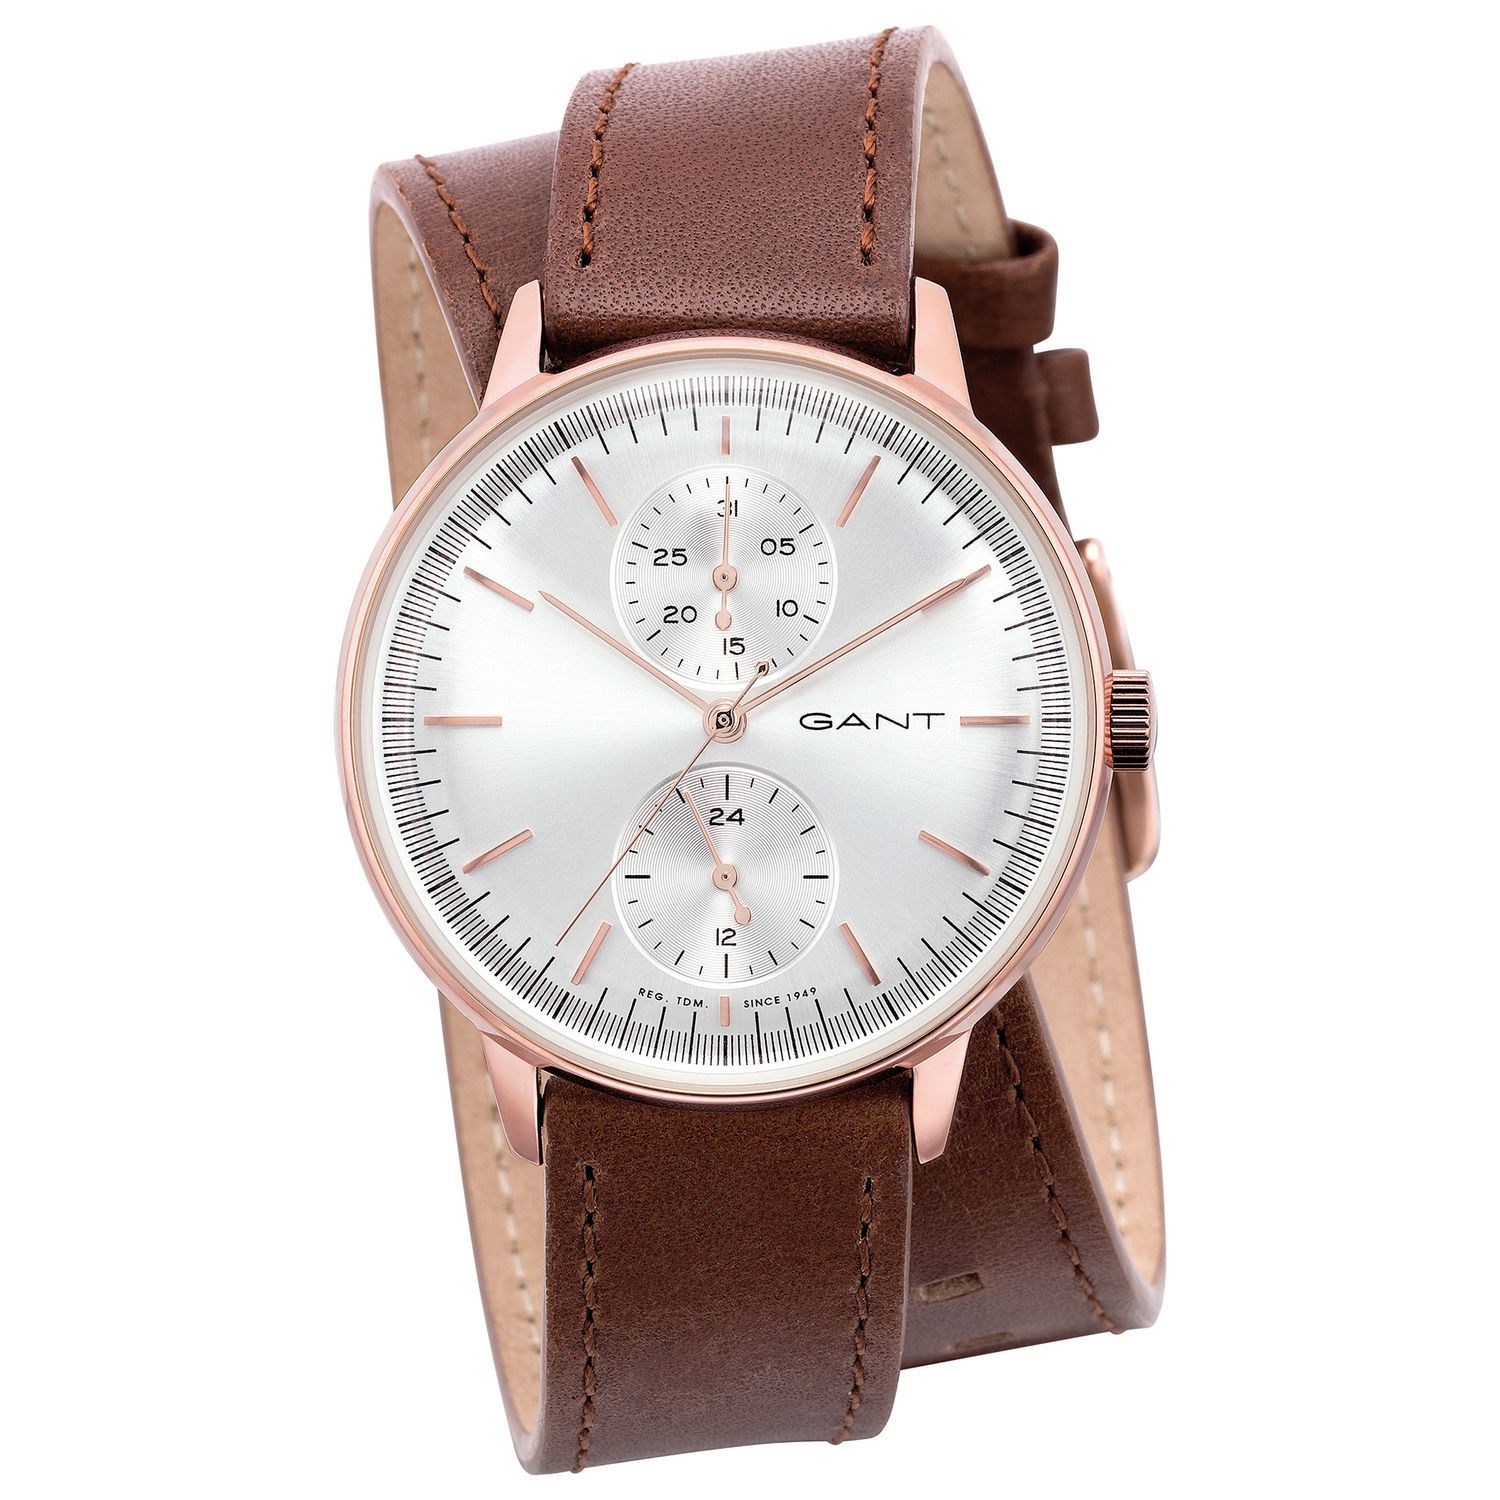 Gant Watch GTAD09000799I Women Rose Gold